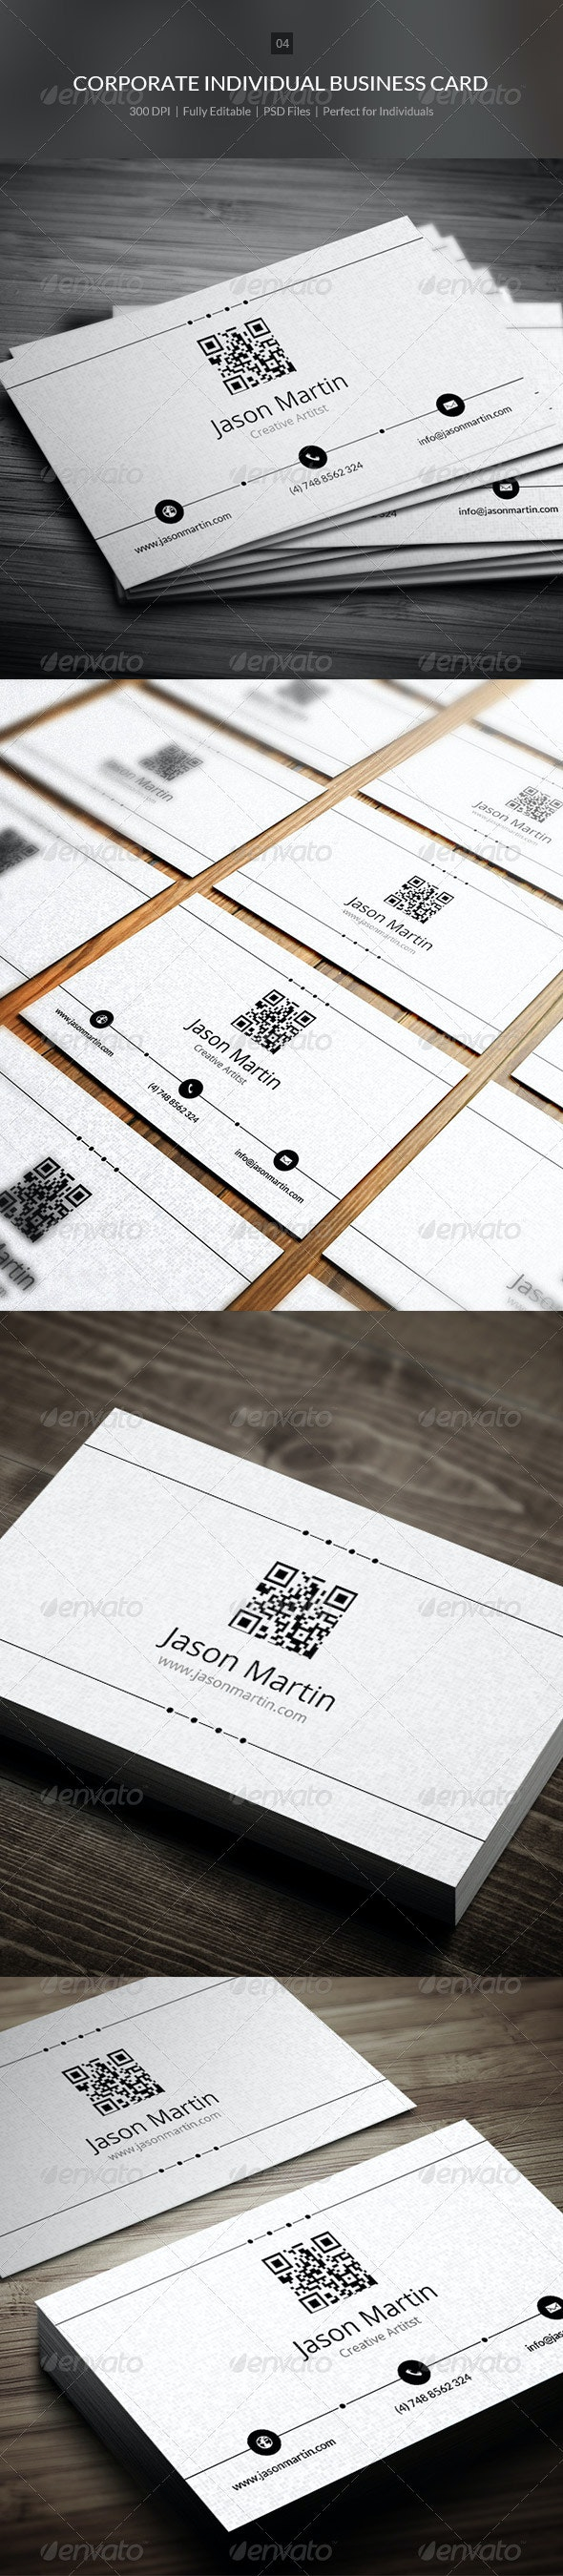 Creative Individual Business Card - 04 - Corporate Business Cards